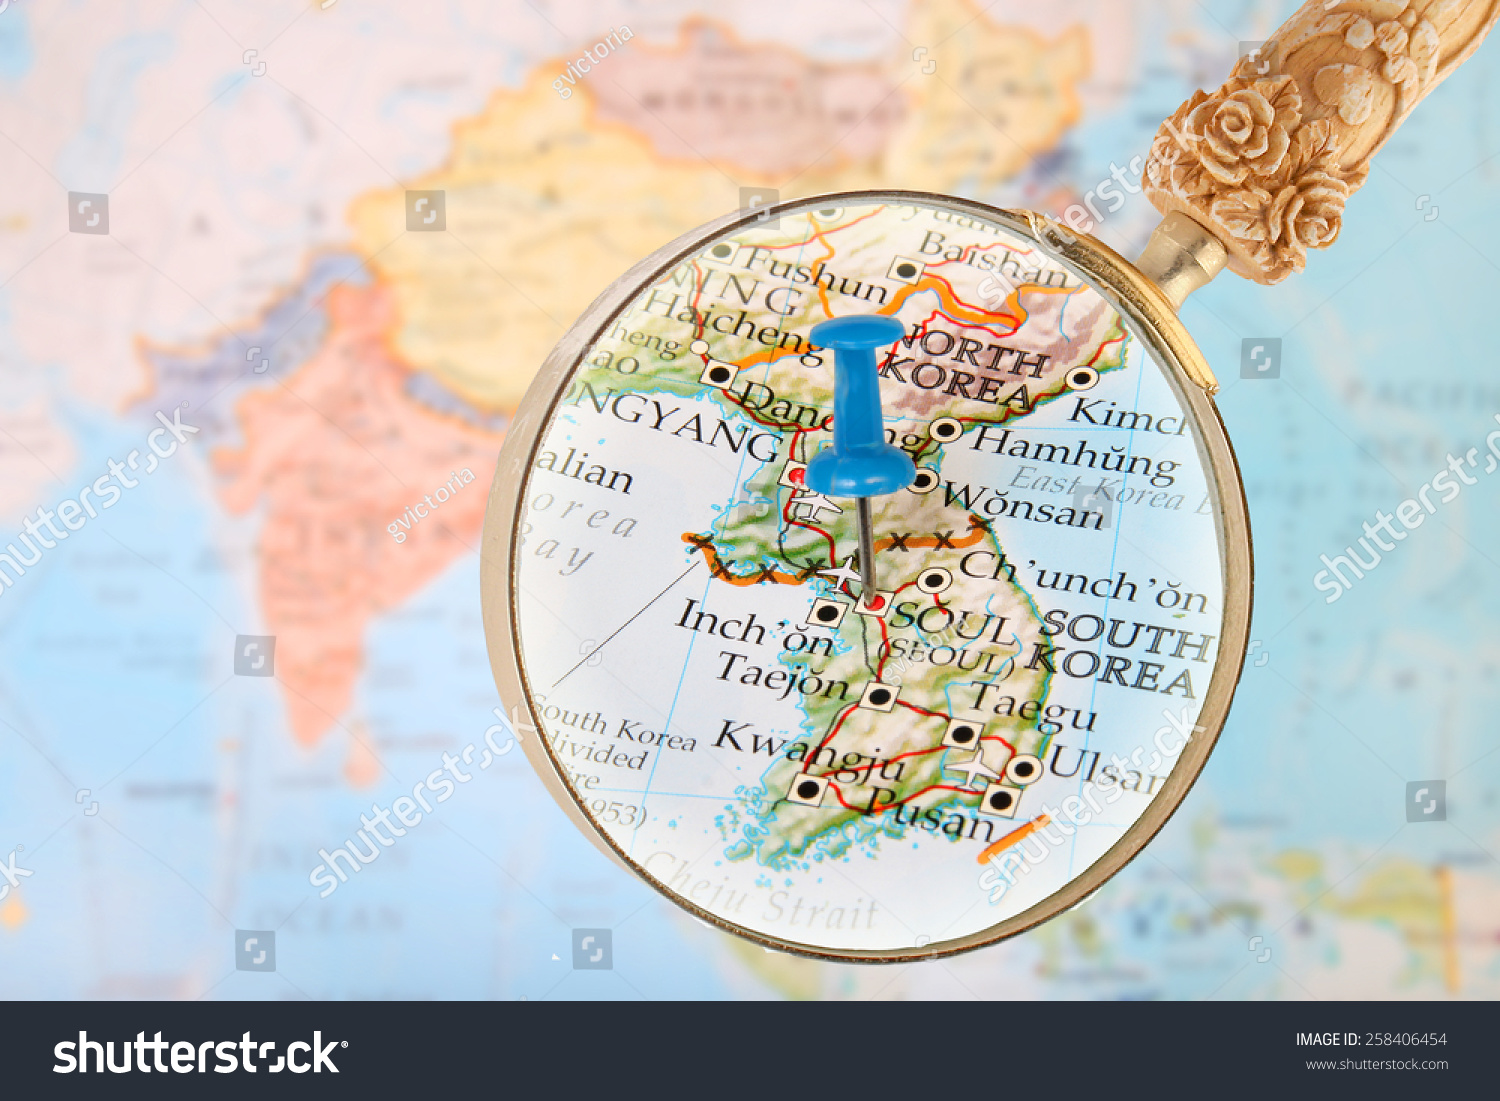 Blue Tack On Map Asia Magnifying Stock Photo Shutterstock - Haicheng map